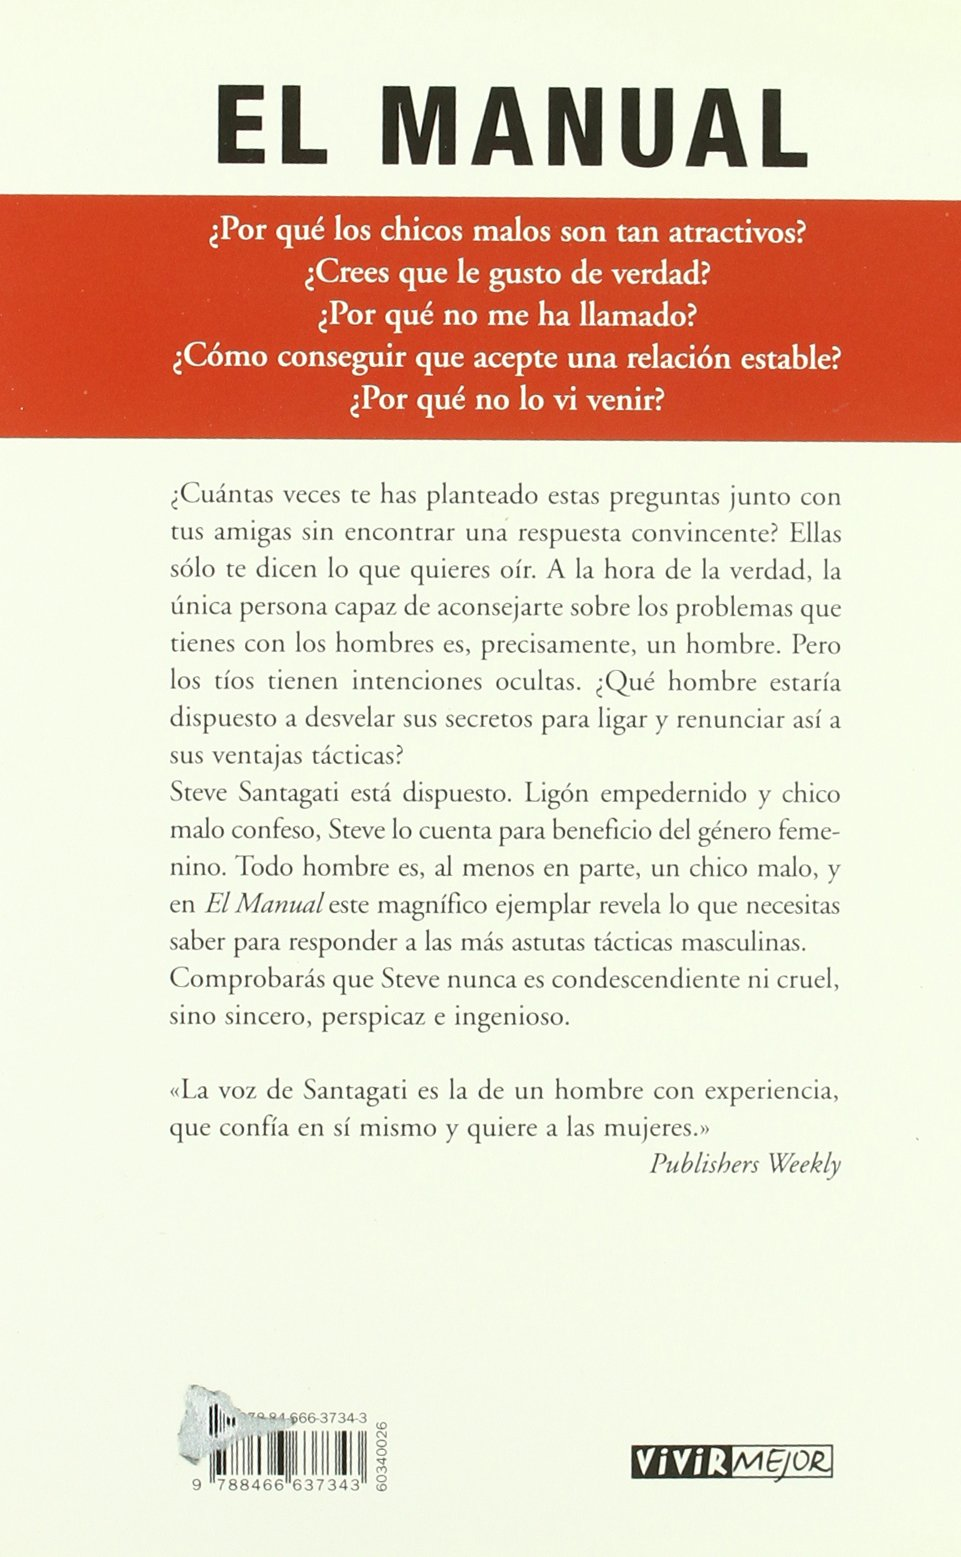 Manual, El (Vivir Mejor (Vergara)) (Spanish Edition): SANTAGATI, STEVE:  9788466637343: Amazon.com: Books